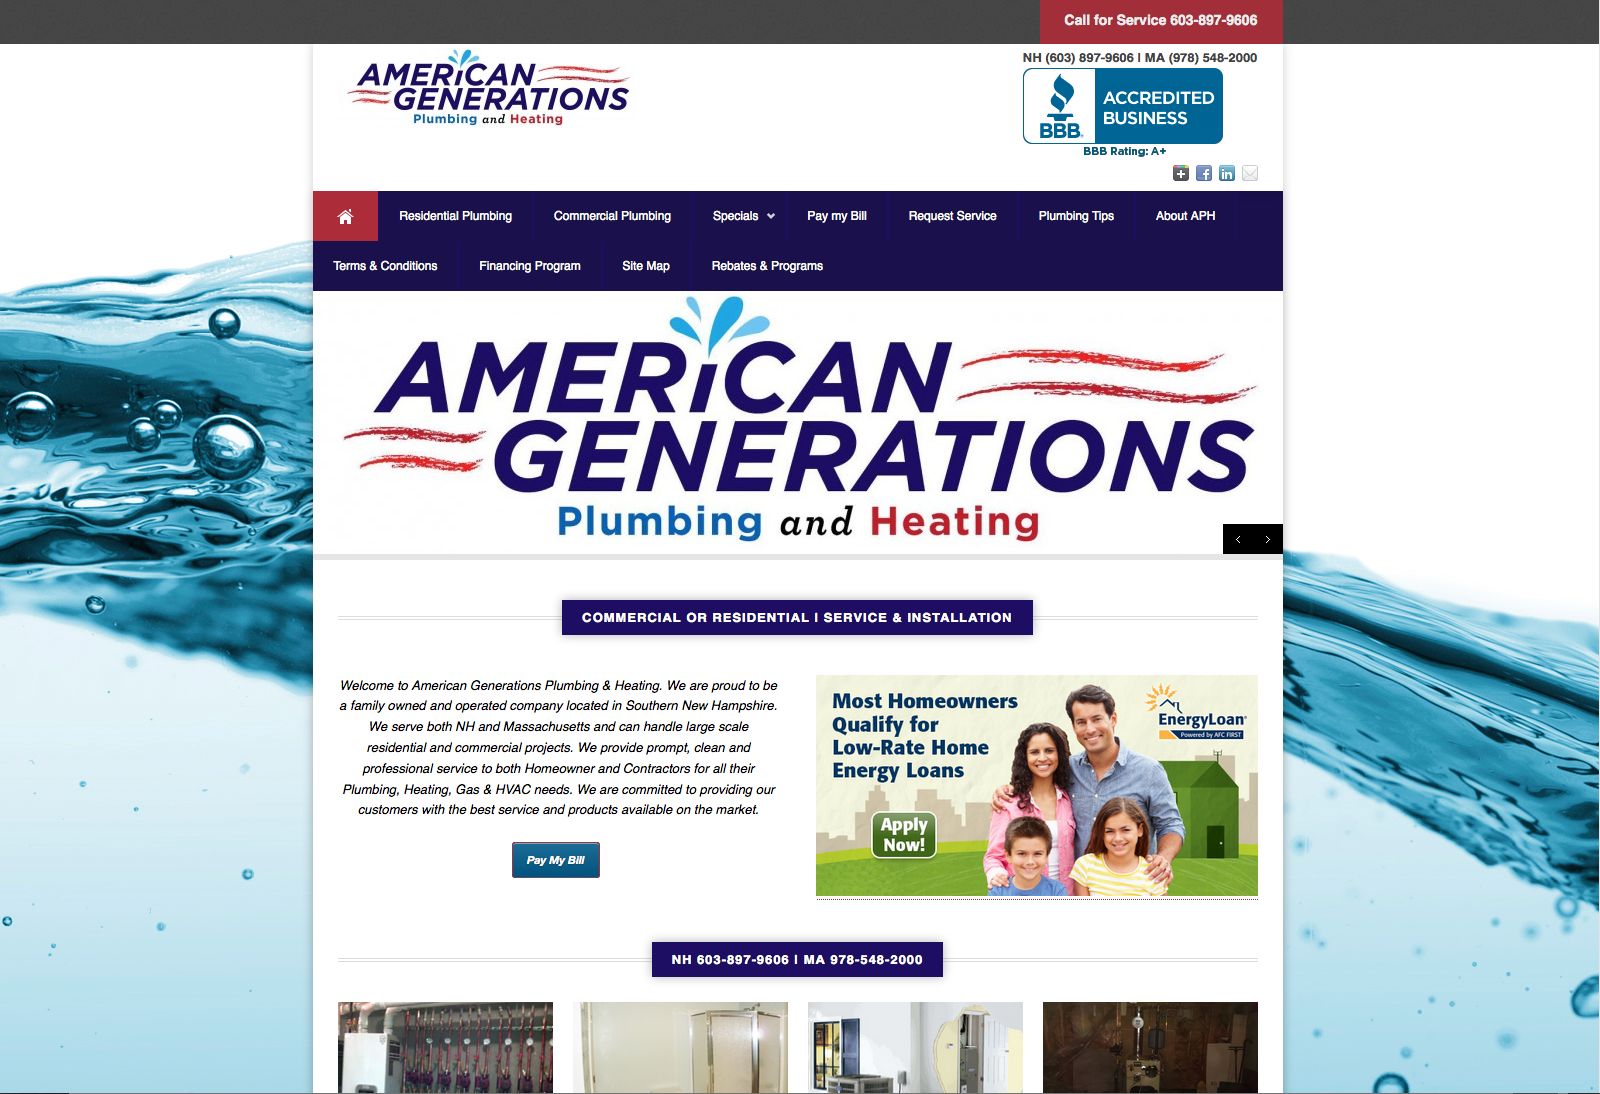 American Generations Plumbing and Heating